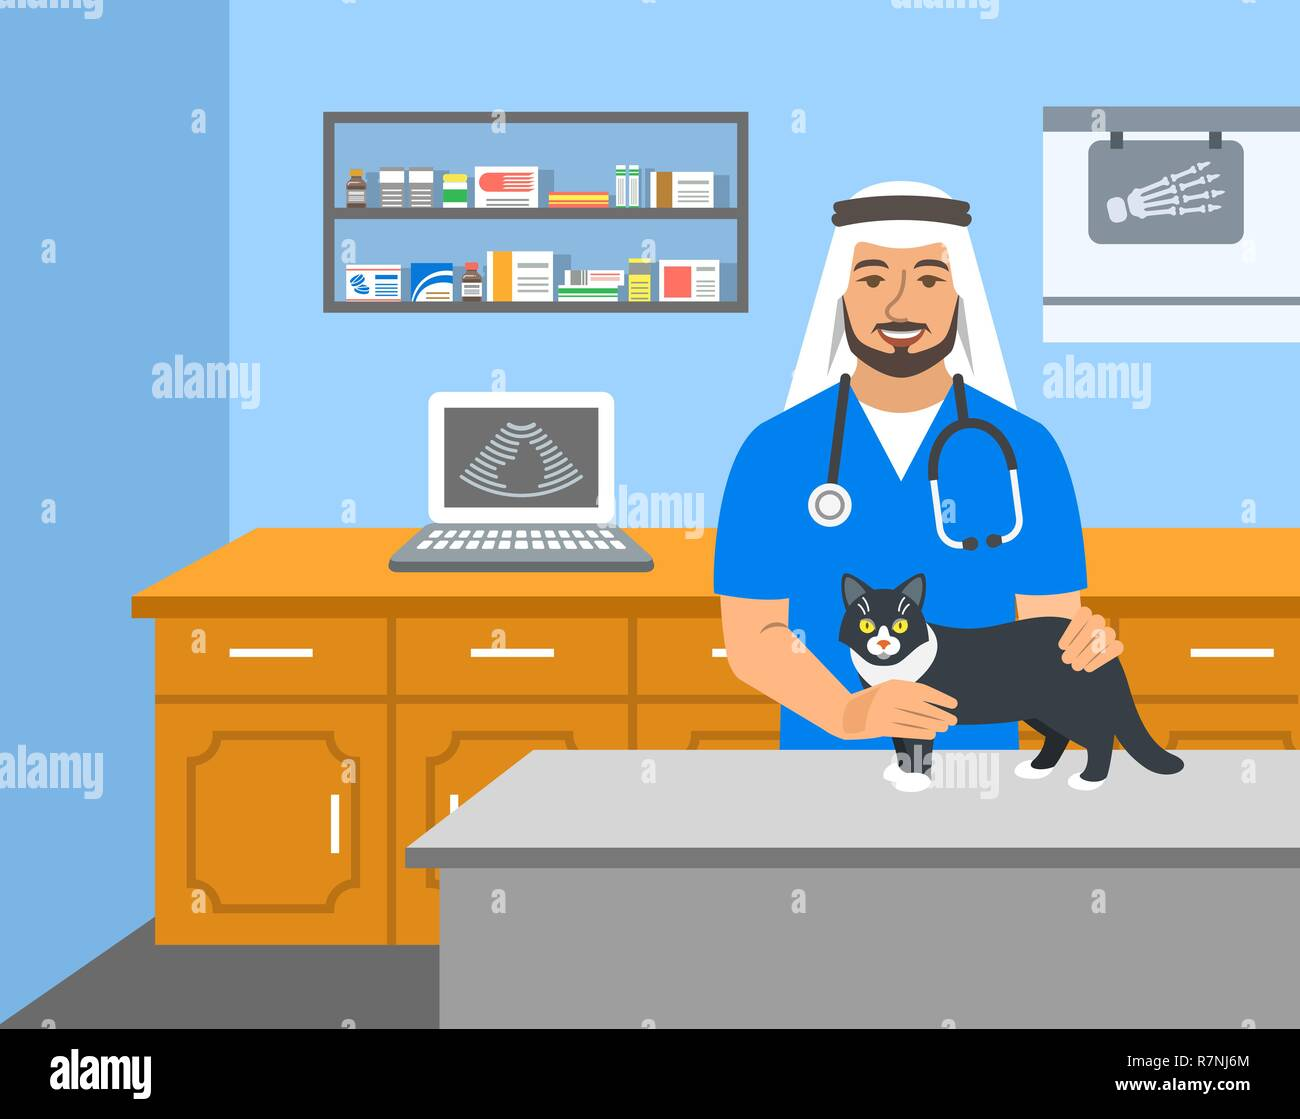 Veterinarian doctor arab man holds cat on examination table in vet clinic. Vector cartoon illustration. Pets health care background. Domestic animals  - Stock Vector